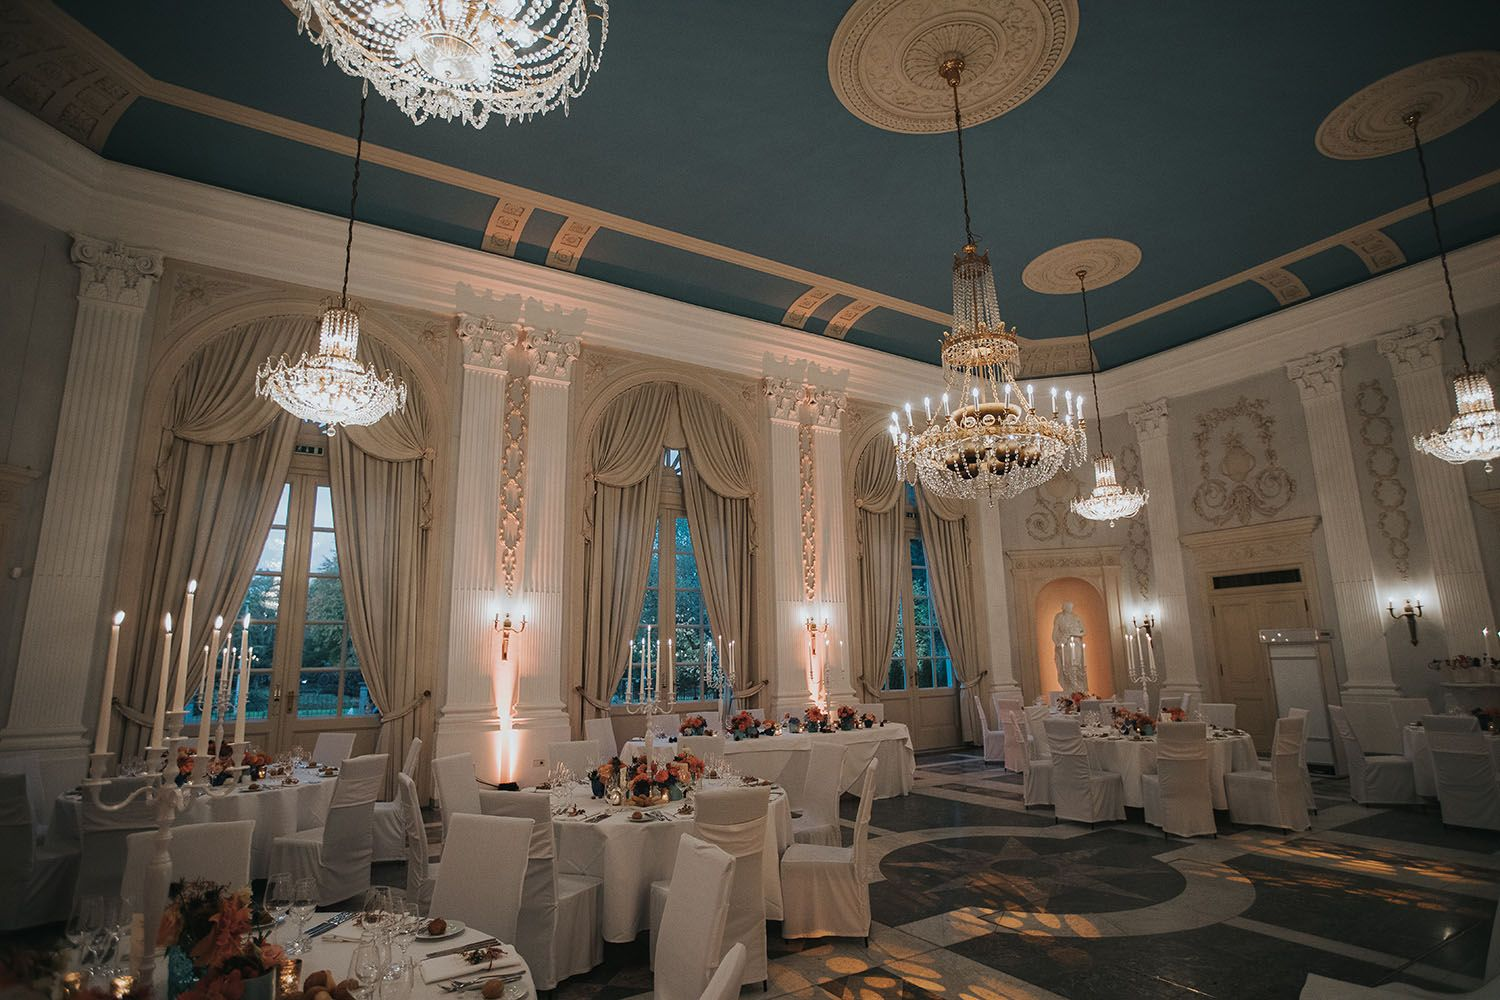 50f2ab0c8d Verena und Davids english style wedding in the Redoute in Bonn ...